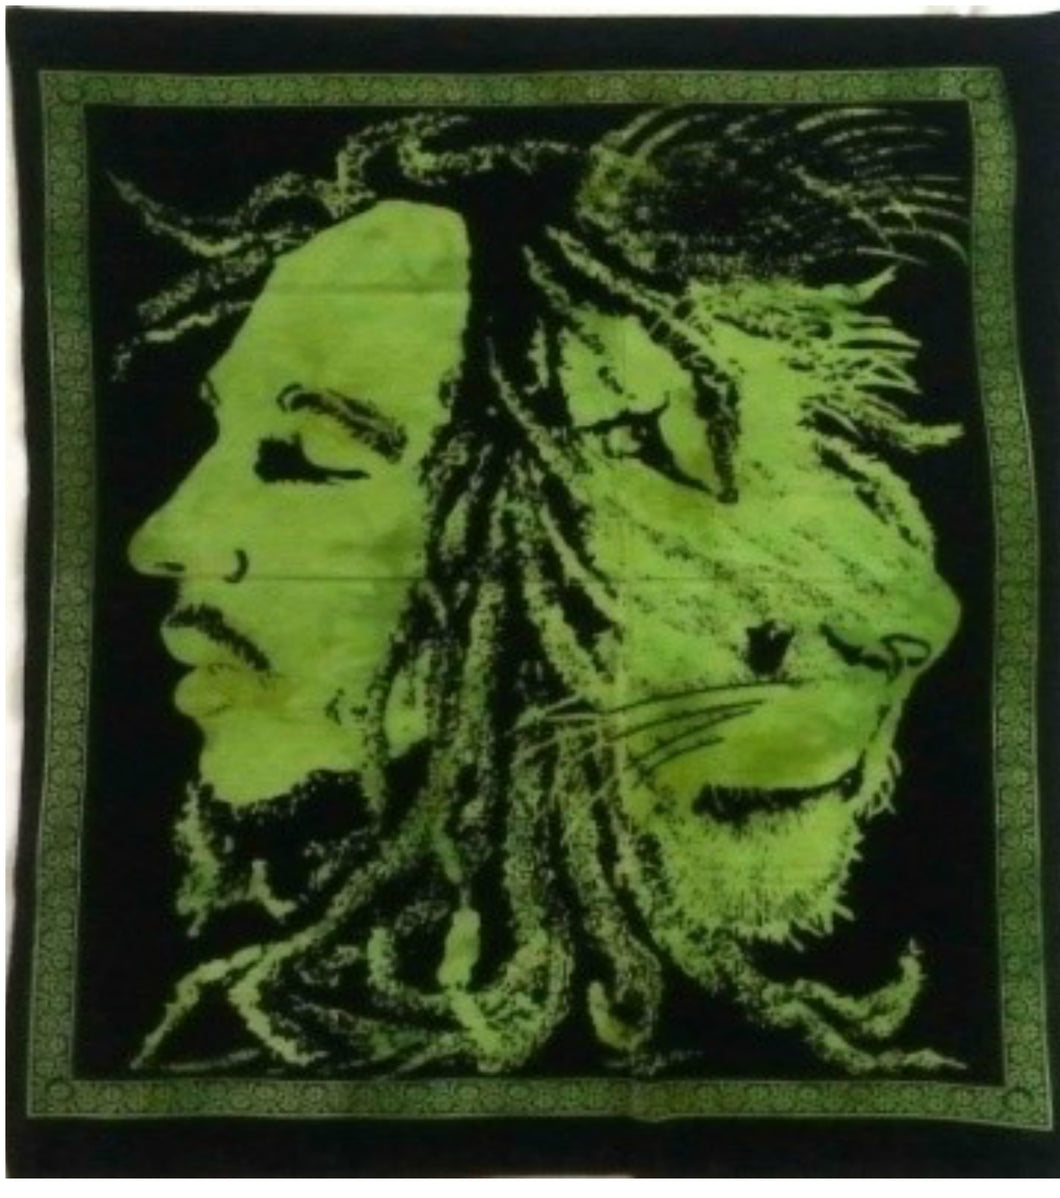 jaan-imports - Bob Marley with Lion Green Color Poster Tapestry - Khoobsurat Gift Shop - Poster Tapestry